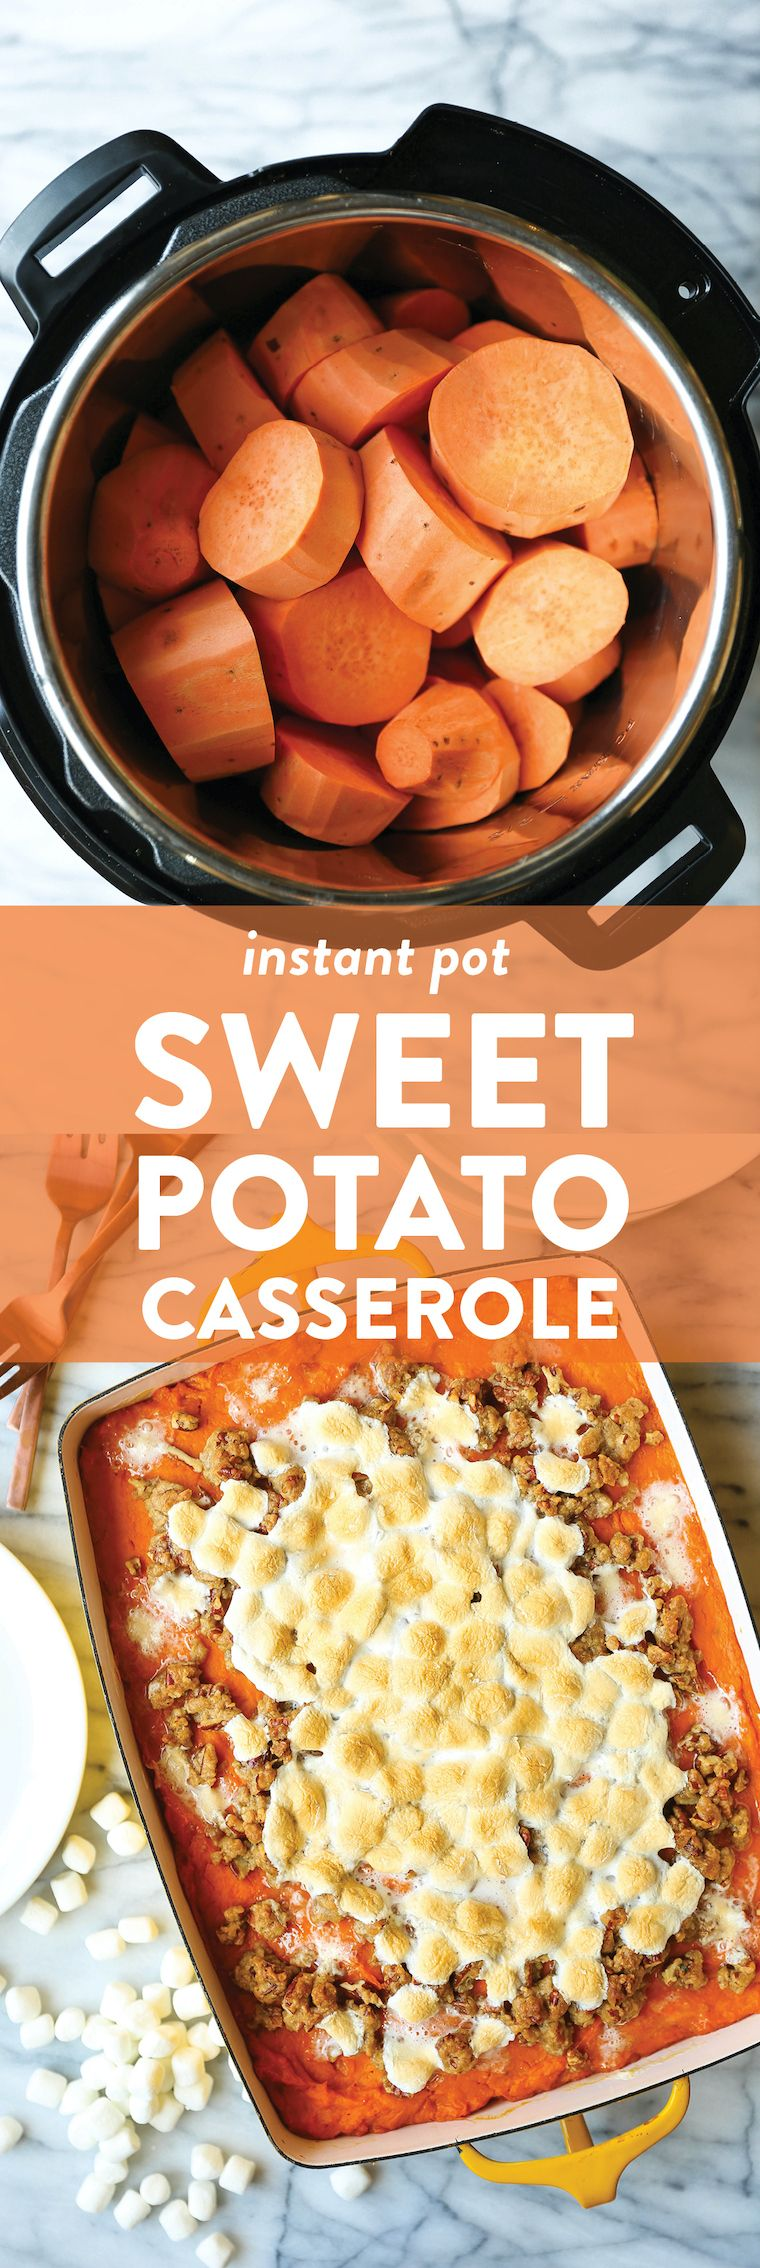 Instant Pot Sweet Potato Casserole Recipe | Damn Delicious